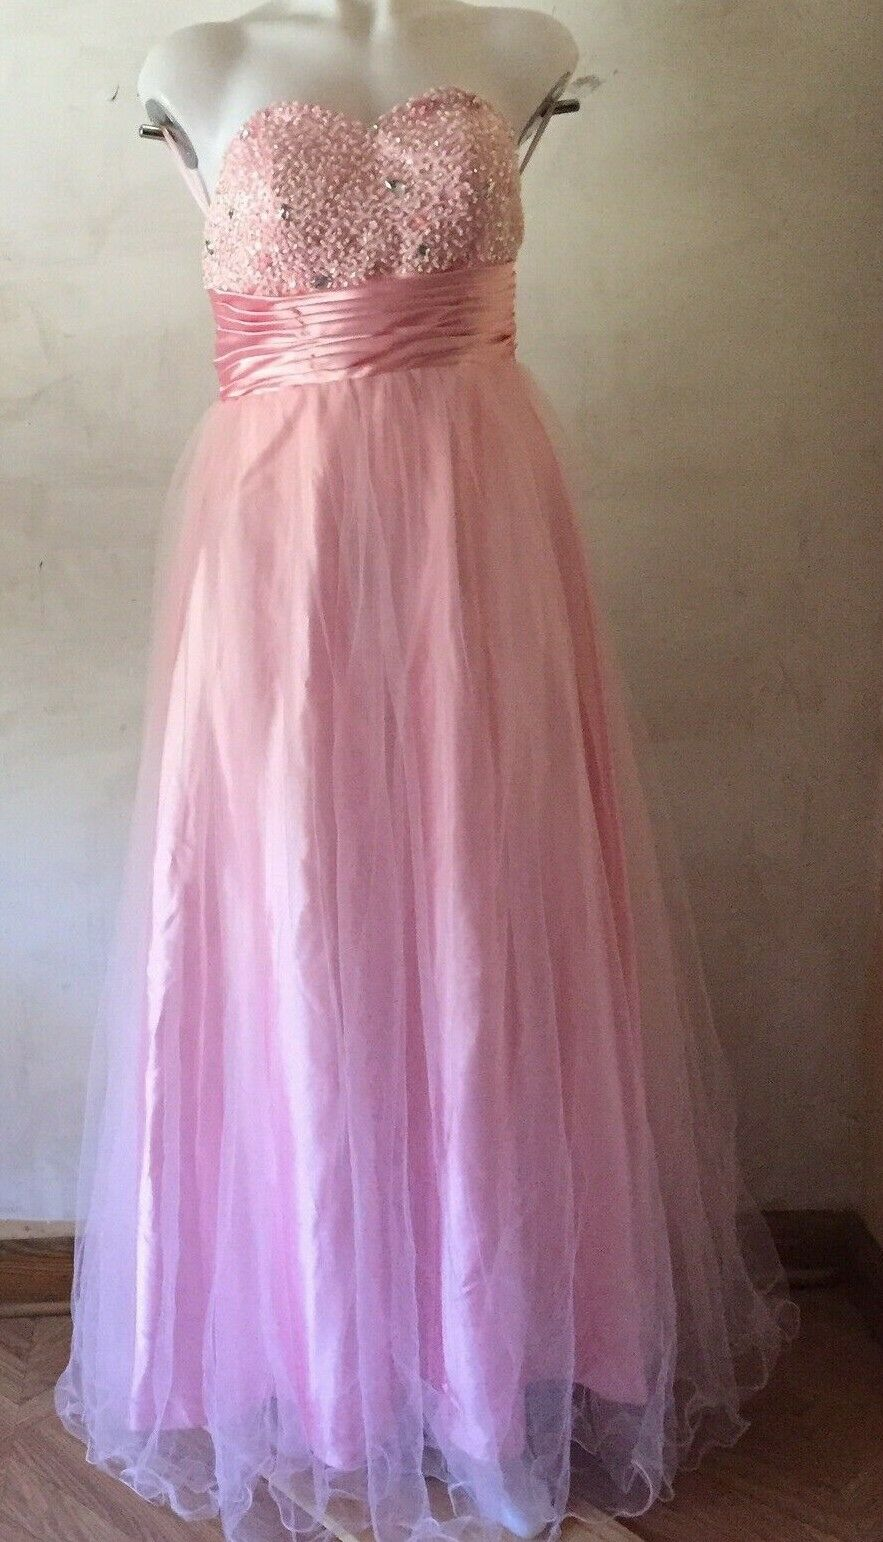 Quinceañera Ball Dress Pink Tulle Strapless Beaded Size 6 NWT